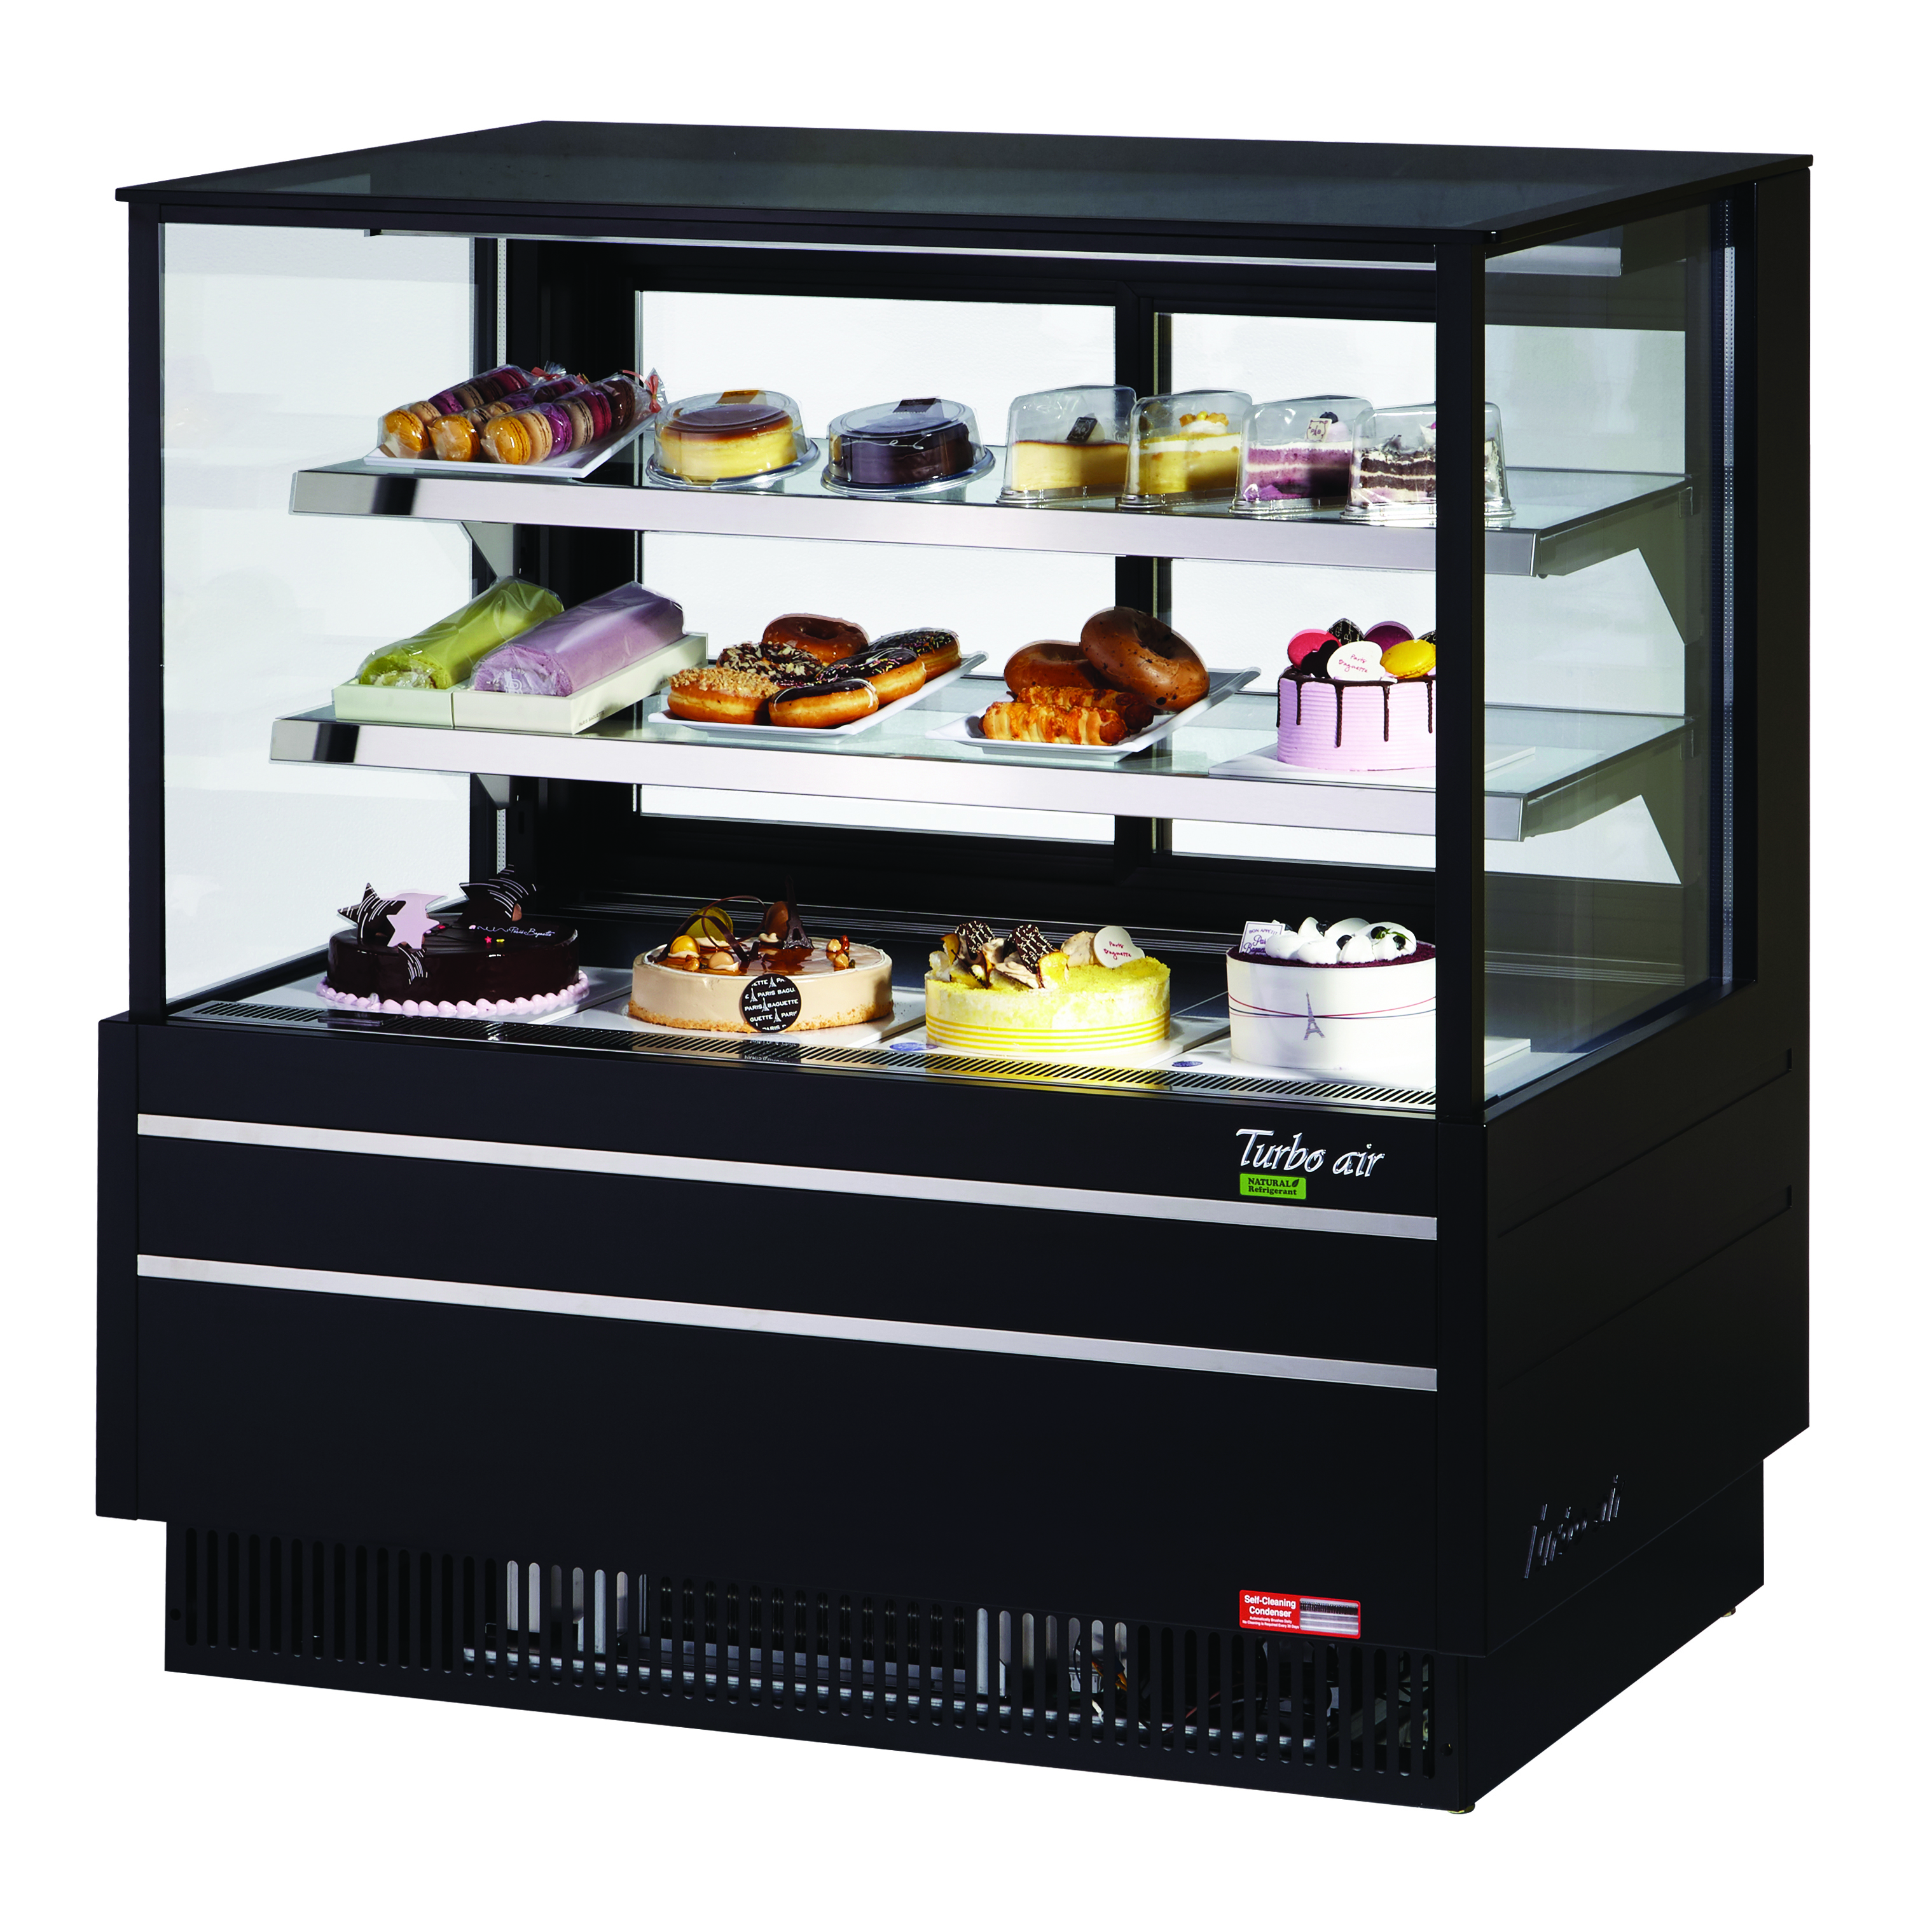 Turbo Air TCGB-48UF-W(B)-N display case, refrigerated